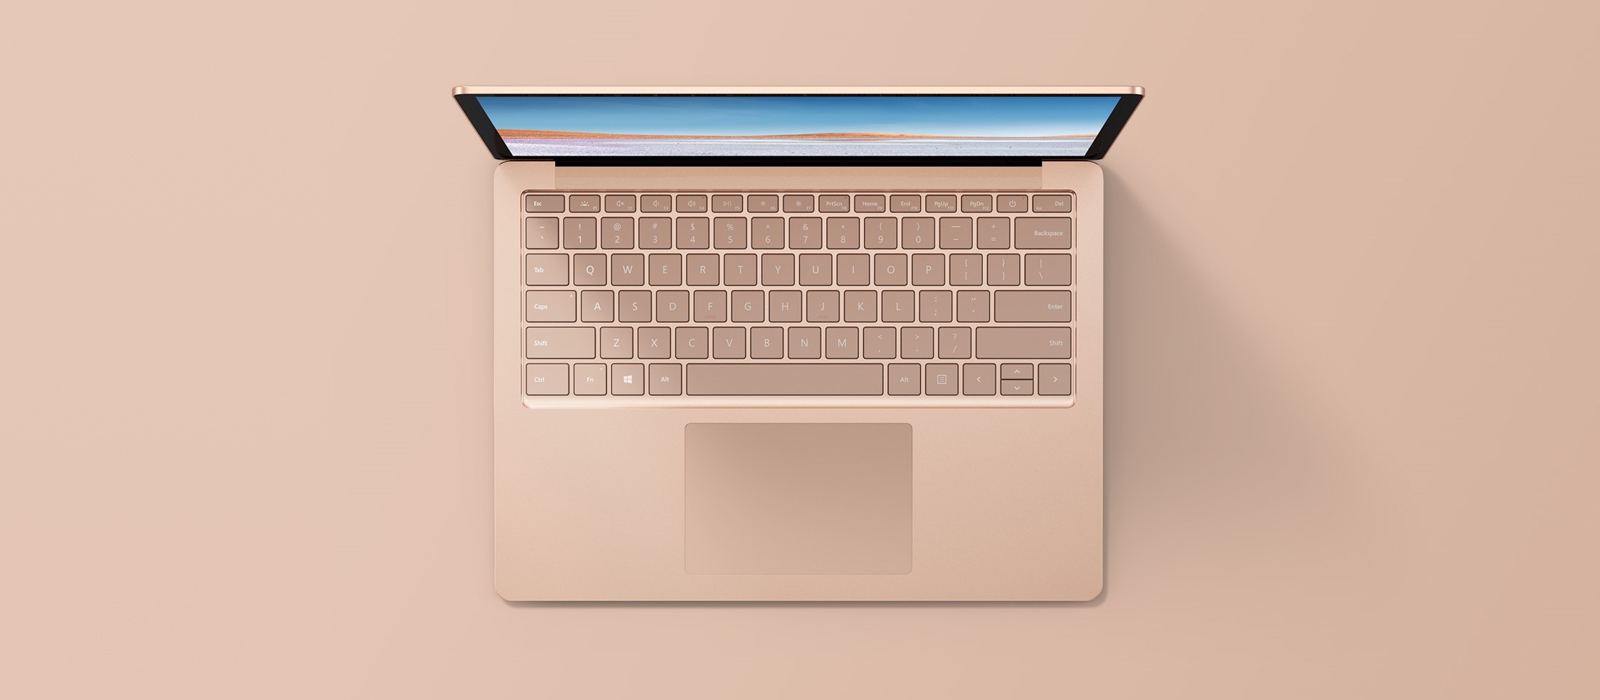 A Surface Laptop with Sandstone finish from a bird's eye view